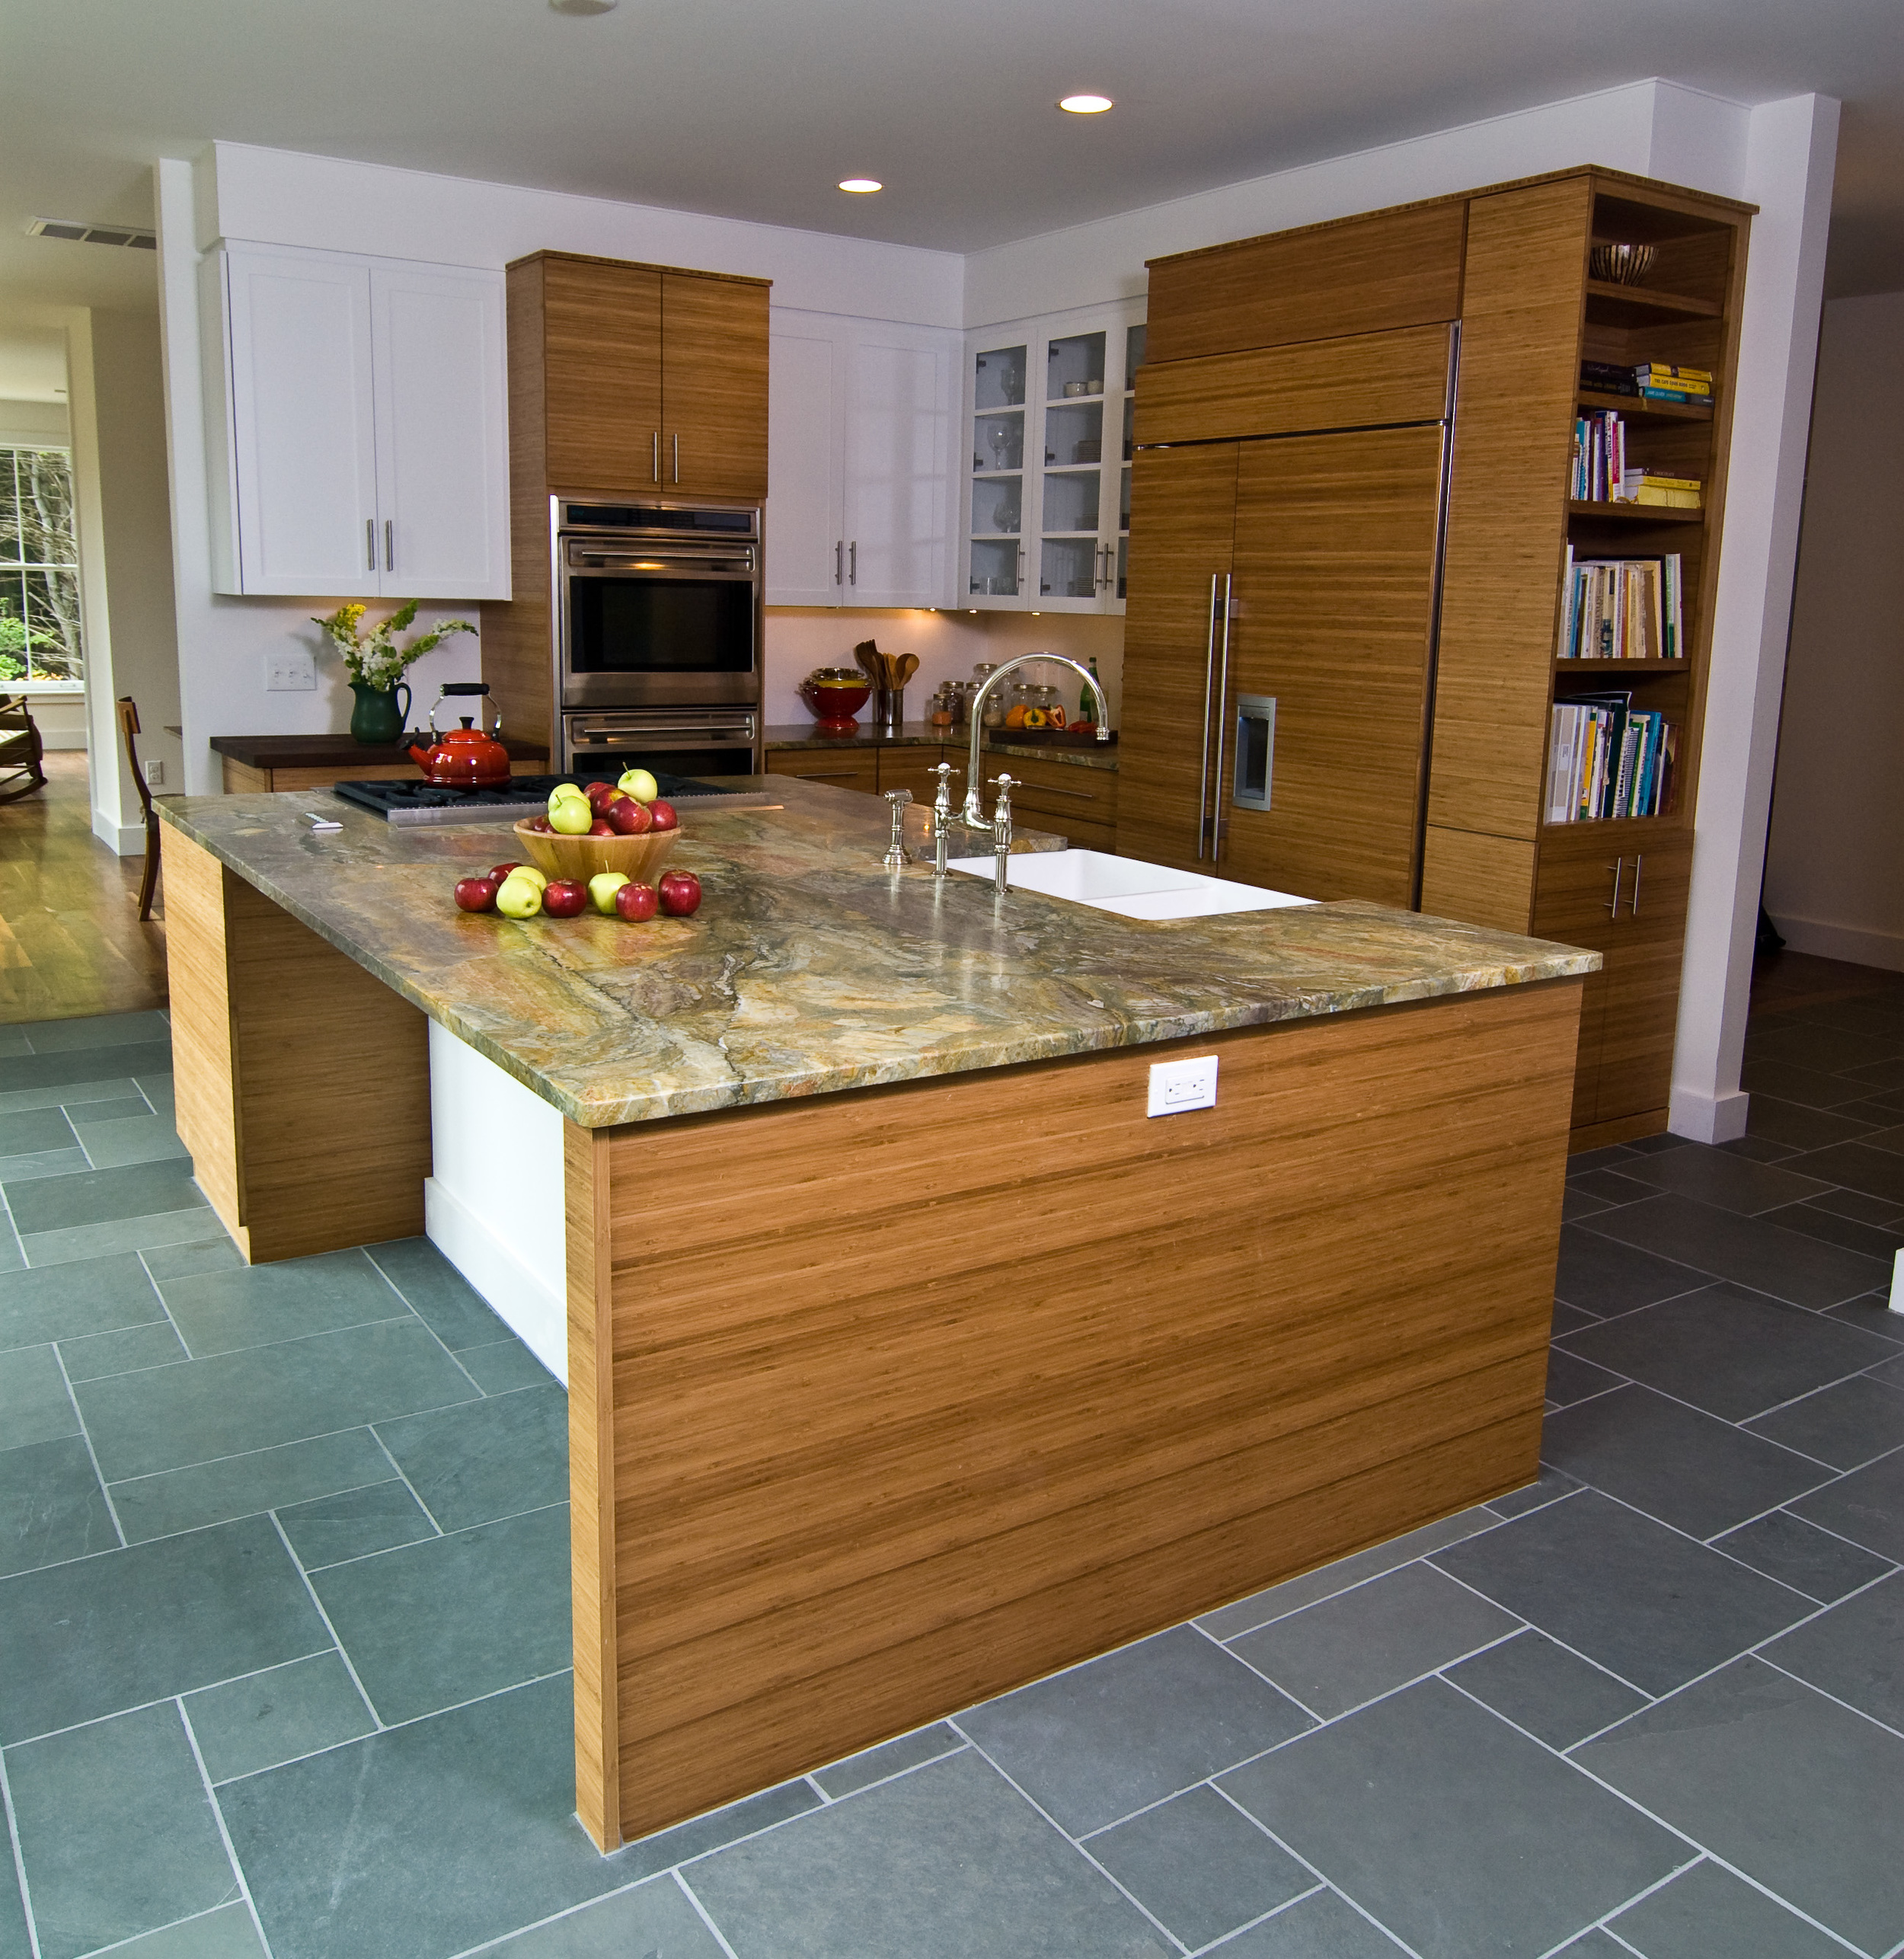 2016 Design Trends A Forecast By The Nkba Classic Kitchens